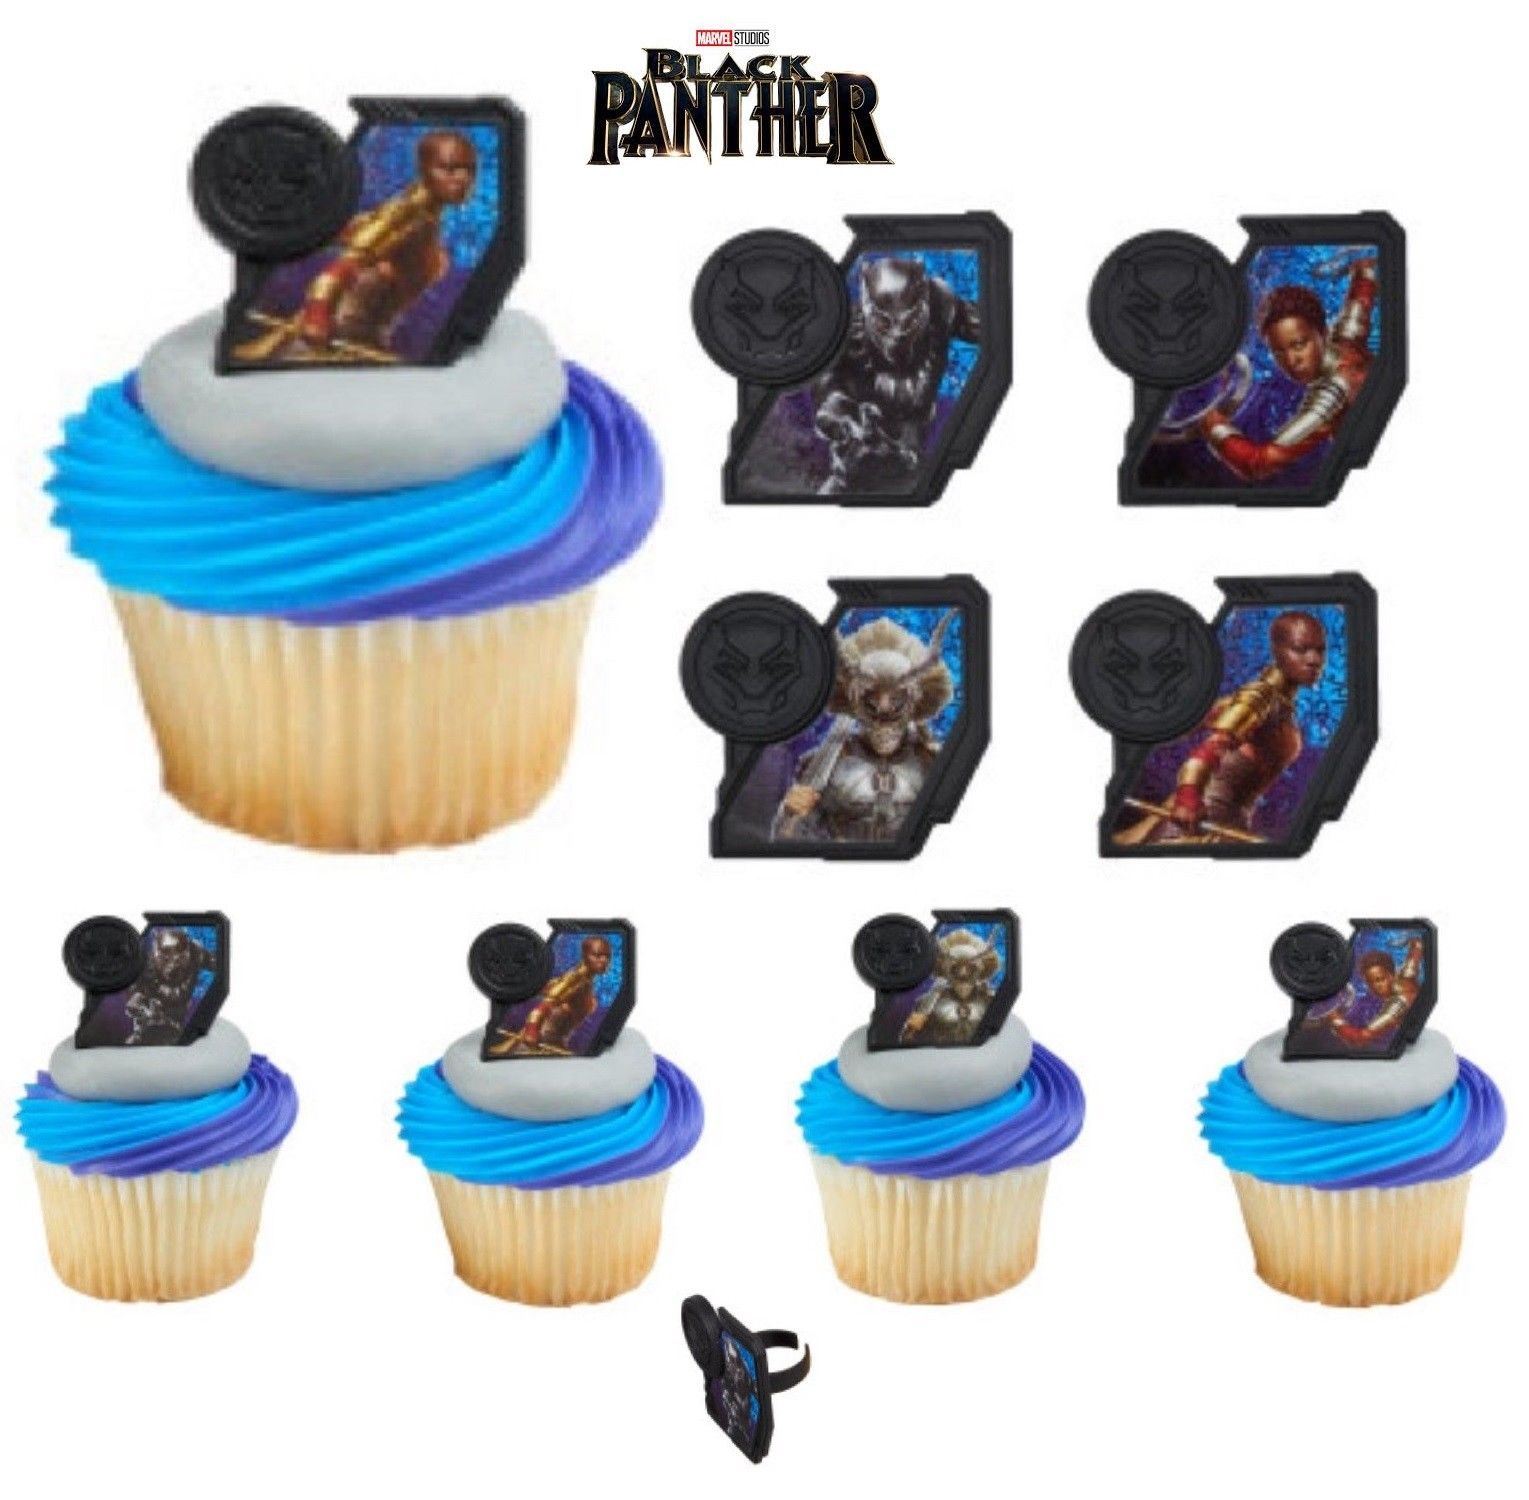 $7.99 - Black Panther Cupcake Toppers Rings Birthday Party Supplies ...